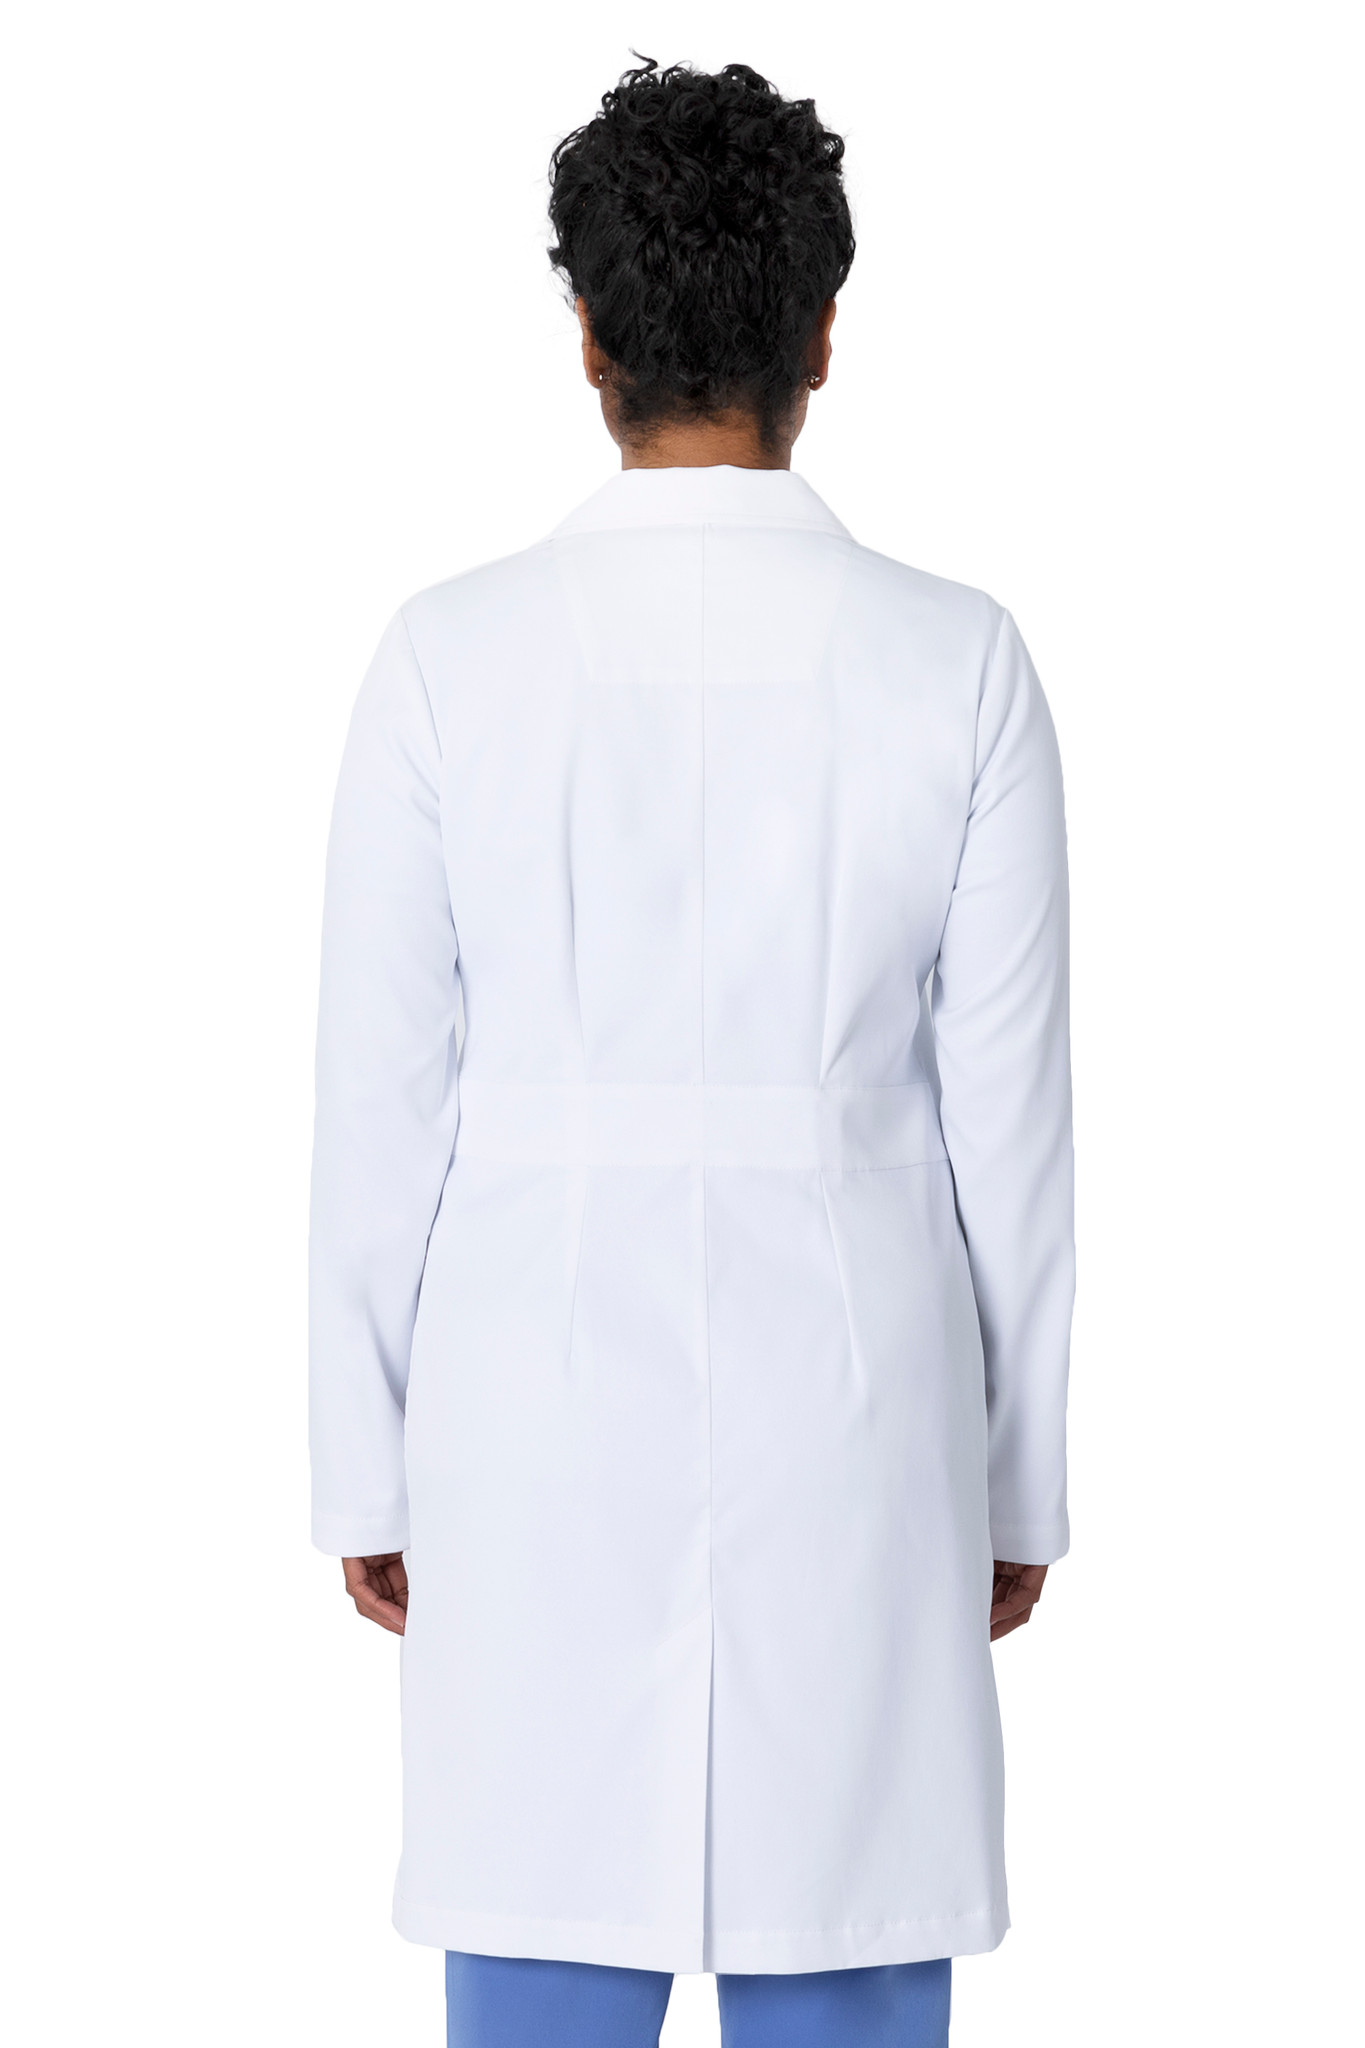 Healing Hands White Coat 5161 The Minimalist Fay Women's Lab Coat Back Image